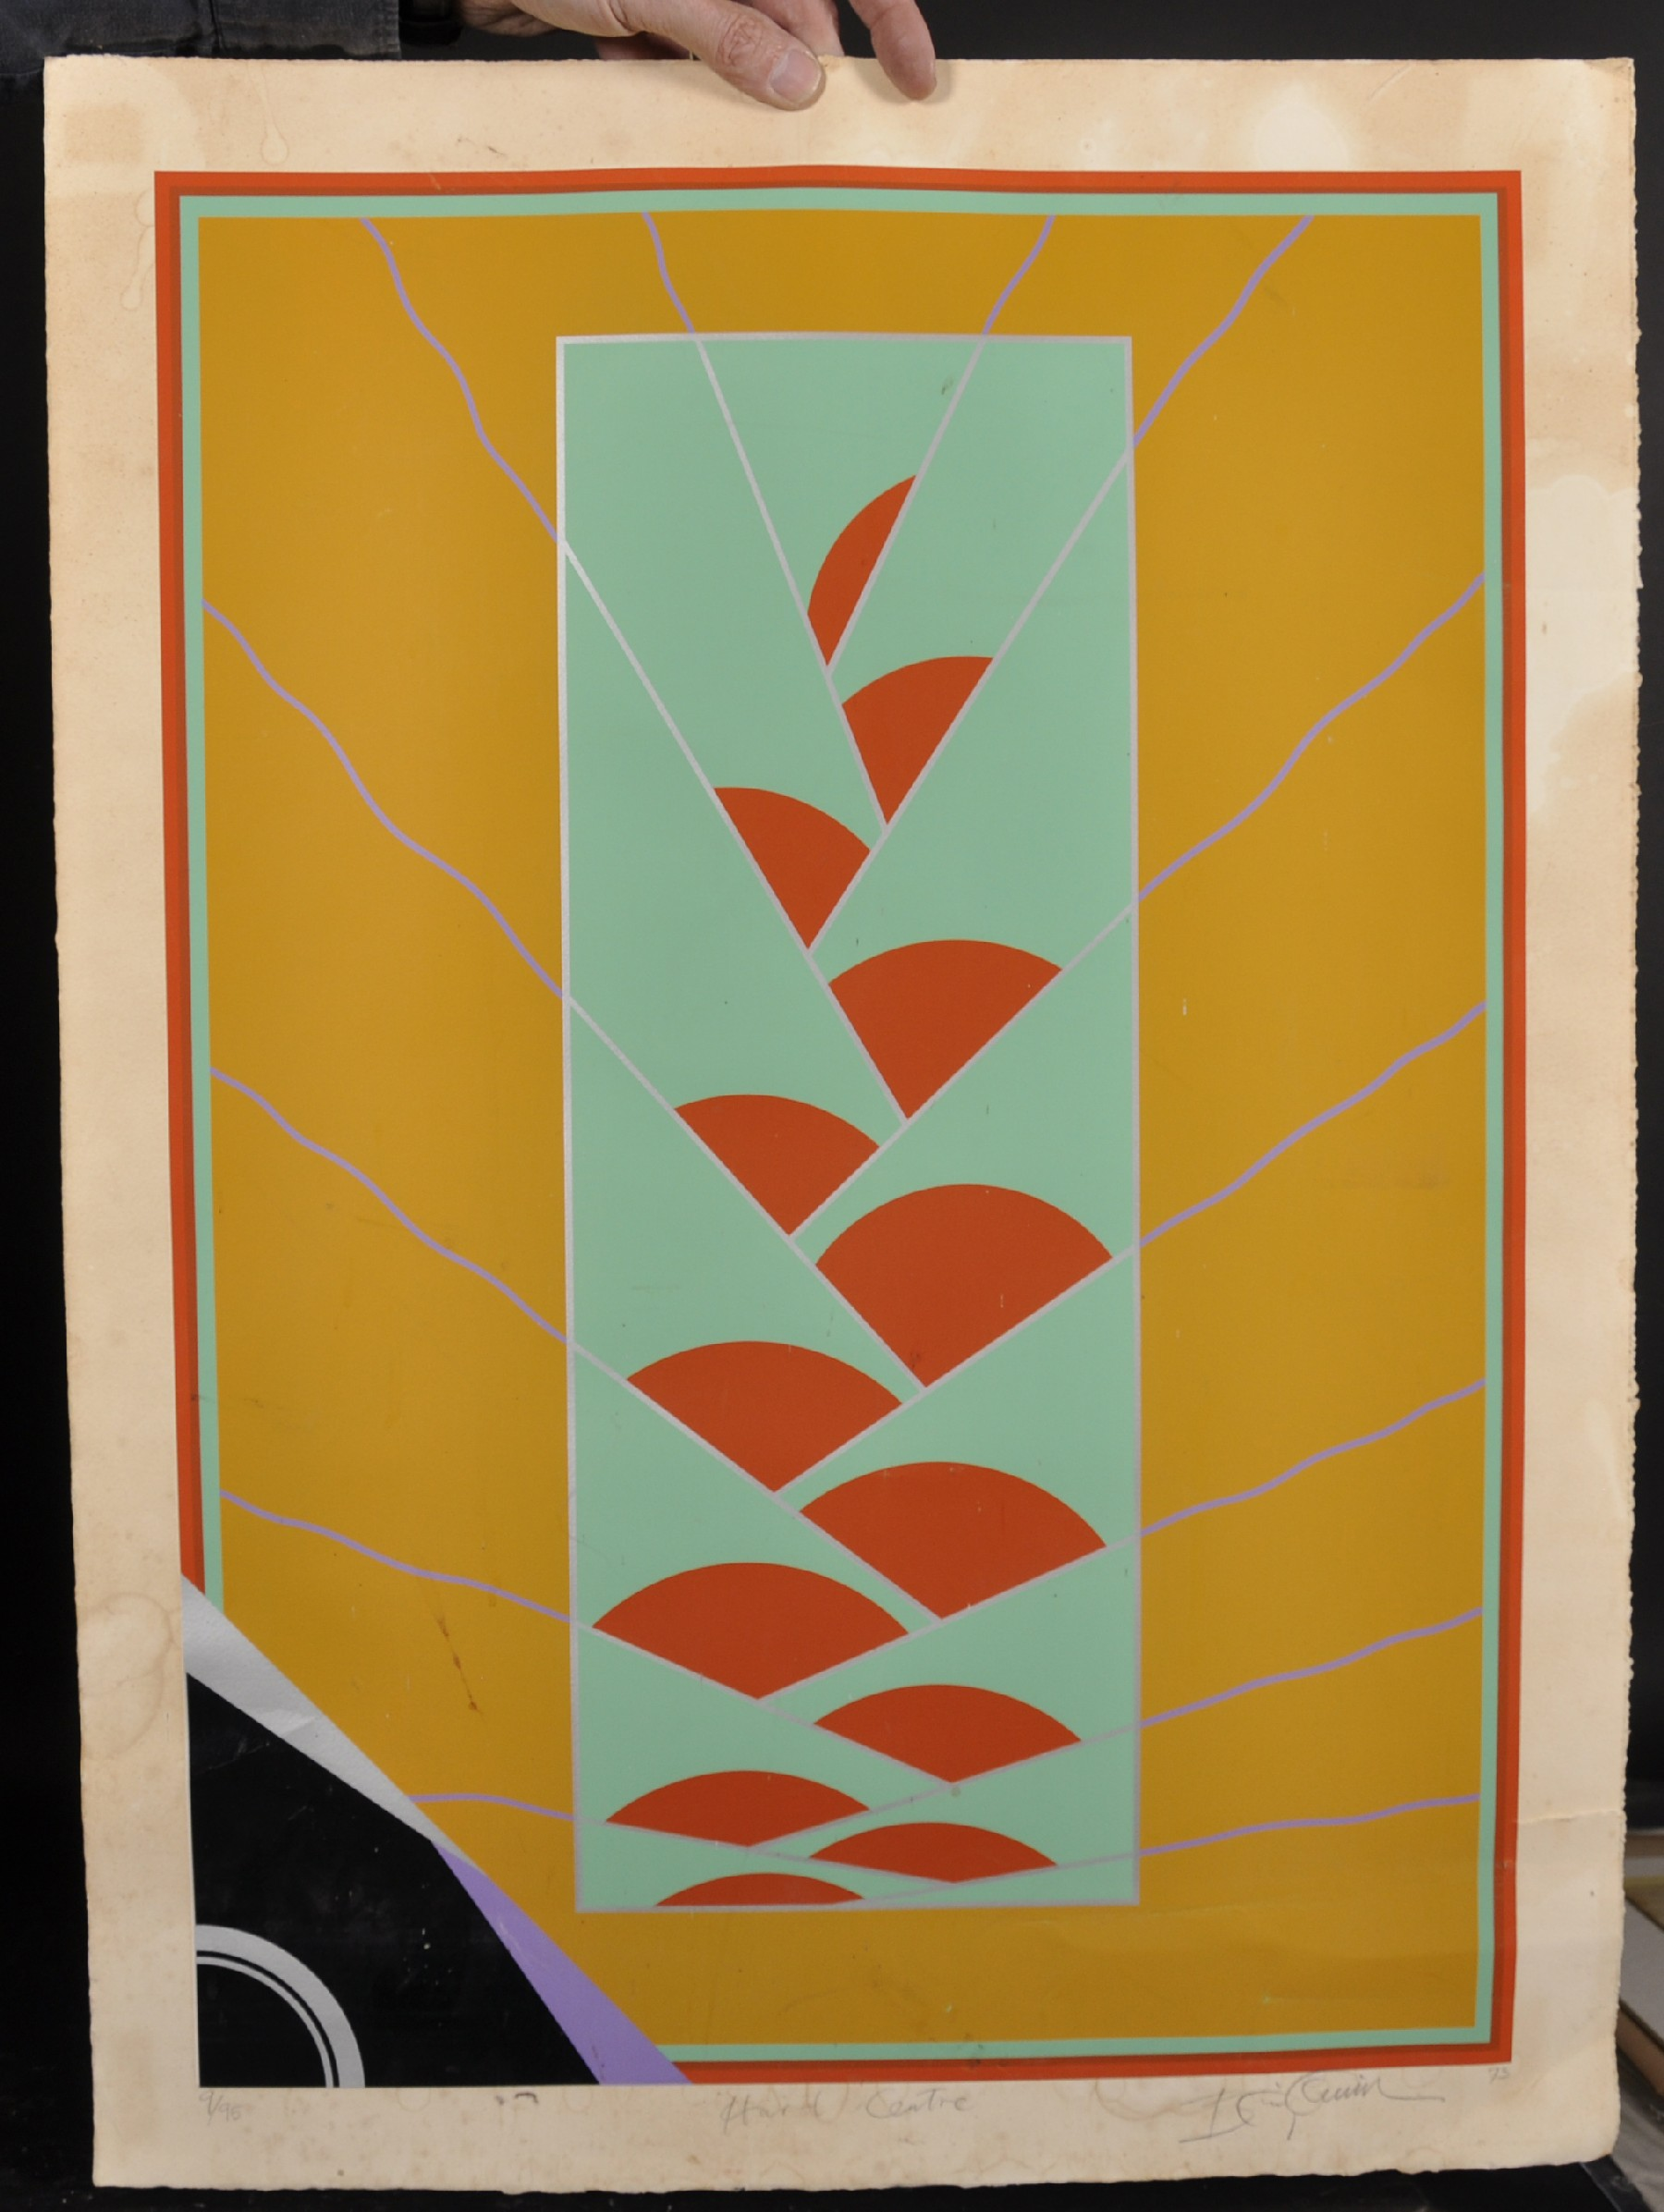 """20th Century English School. """"Hard Centre"""", Serigraph, Indistinctly Signed, Inscribed, Dated '73 and - Image 2 of 4"""